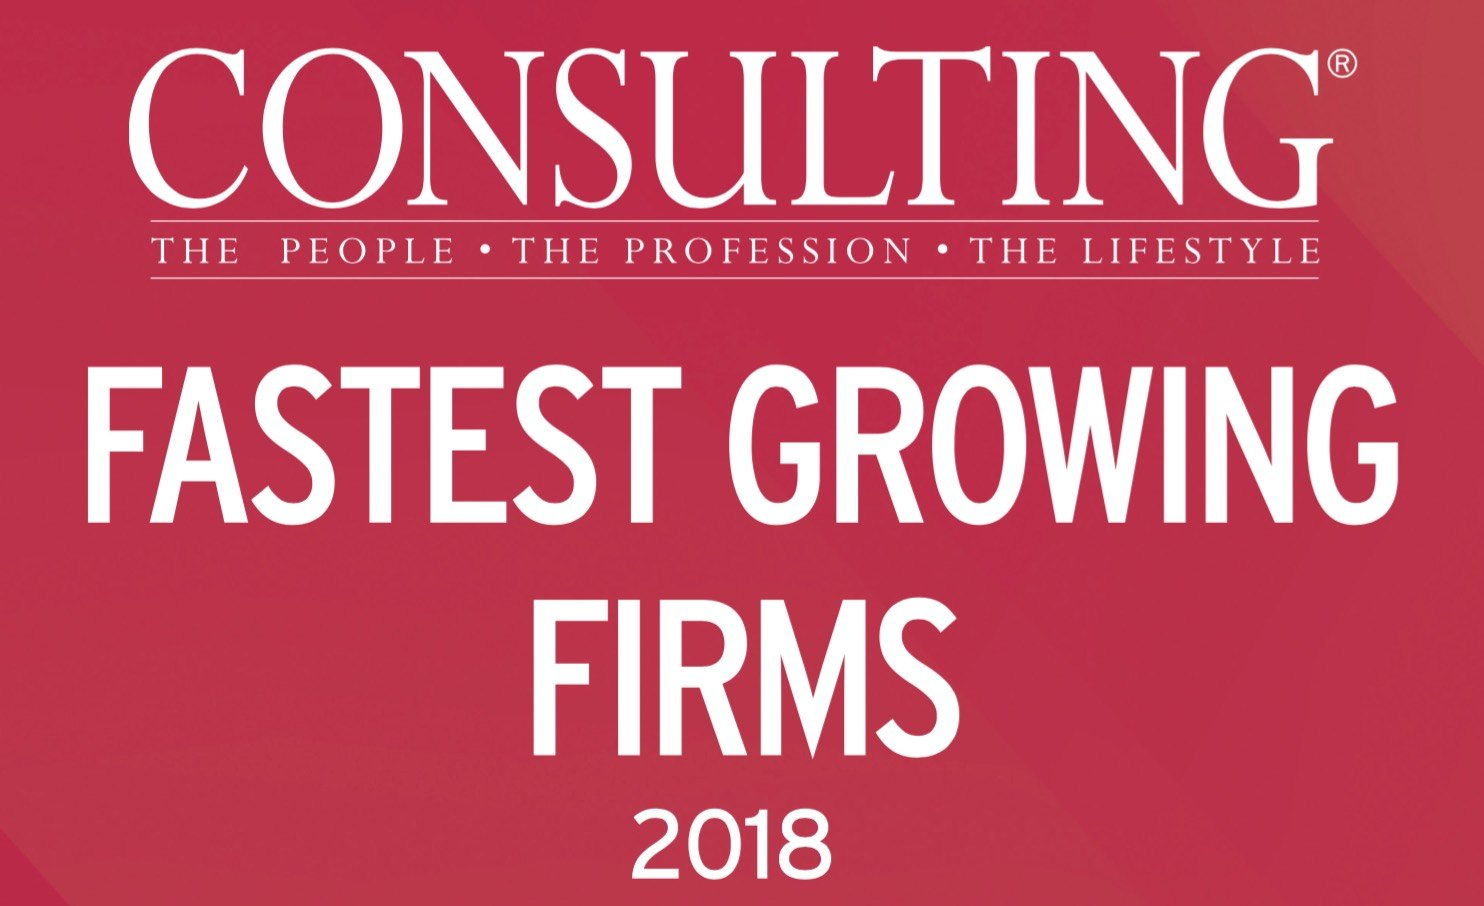 The 2018 Fastest Growing Firms—Apply